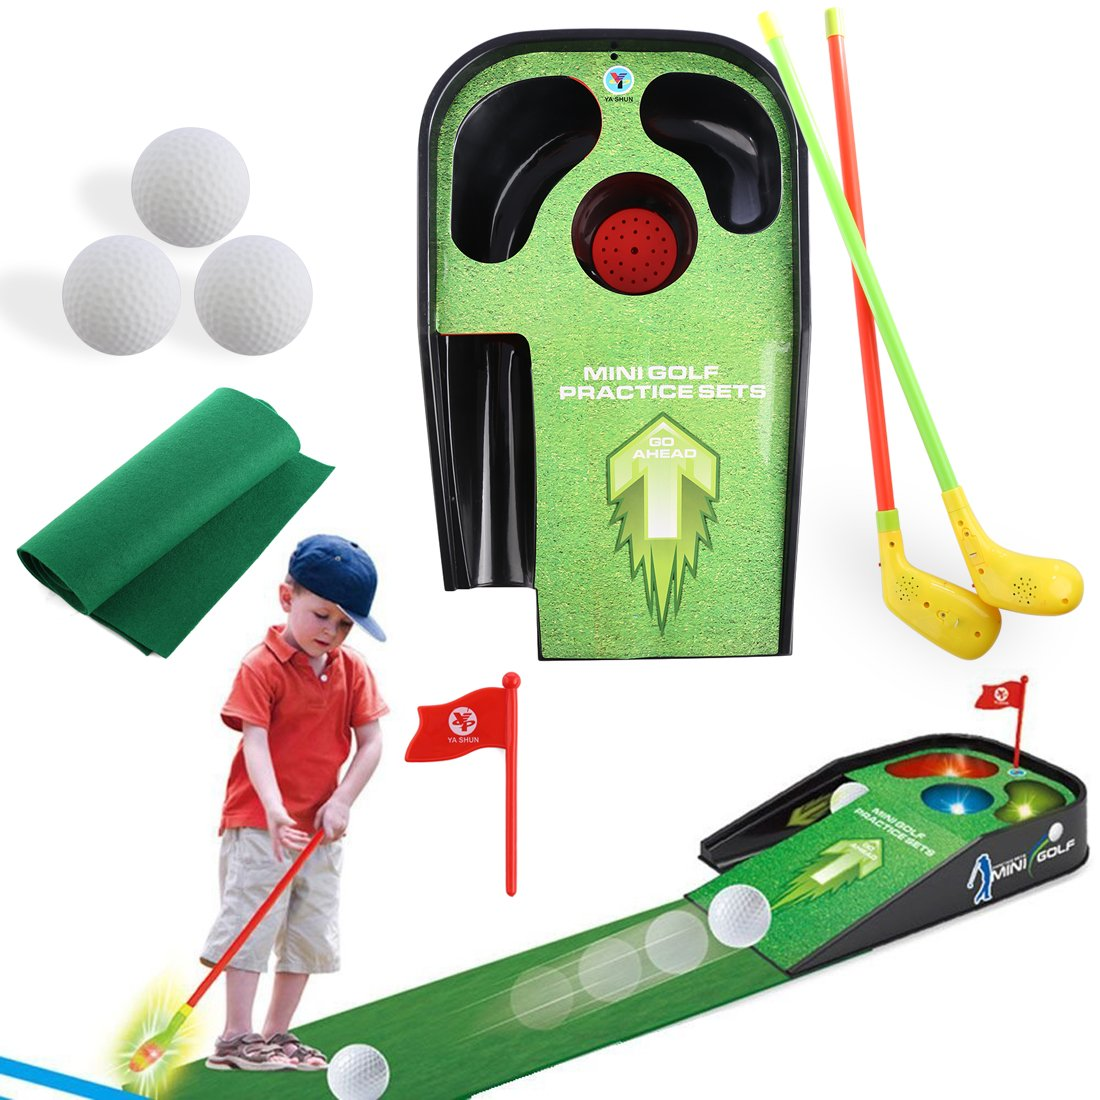 RuiyiF Golf Toys Clubs Set for Kids Toddlers Boys Girls Adults Comes with 2Golf Clubs,1Golf Ball, 1Ball Table, 1Carpet,1Flag by RuiyiF